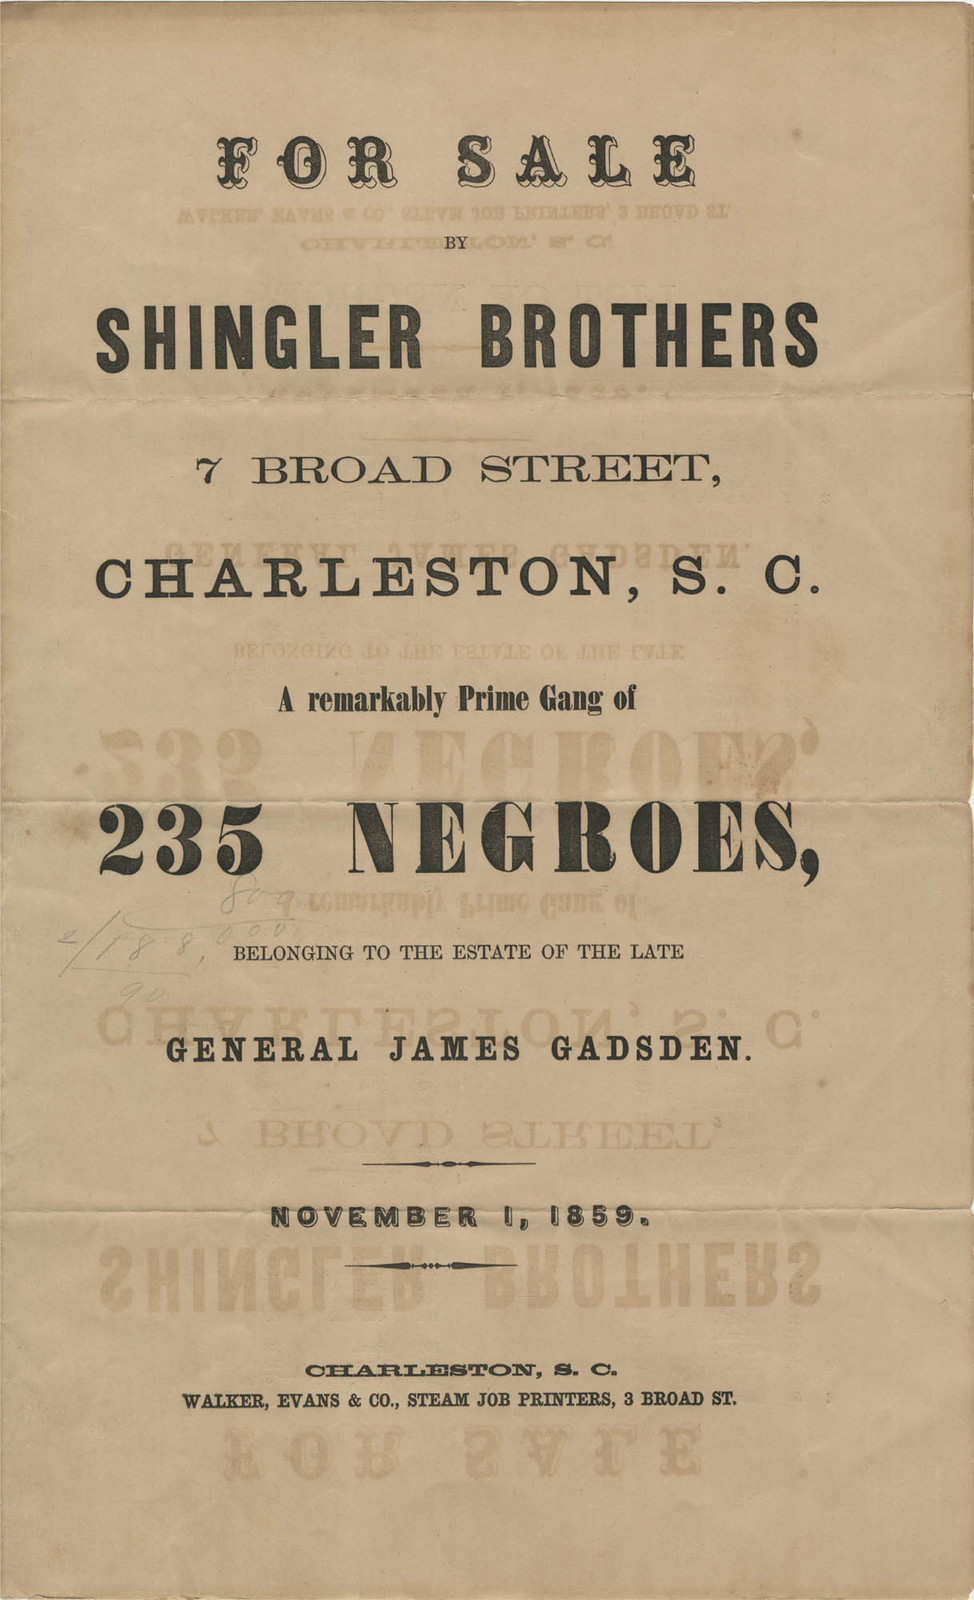 Hutson Lee papers advertising sales of slaves in Charleston in 1859 and 1860